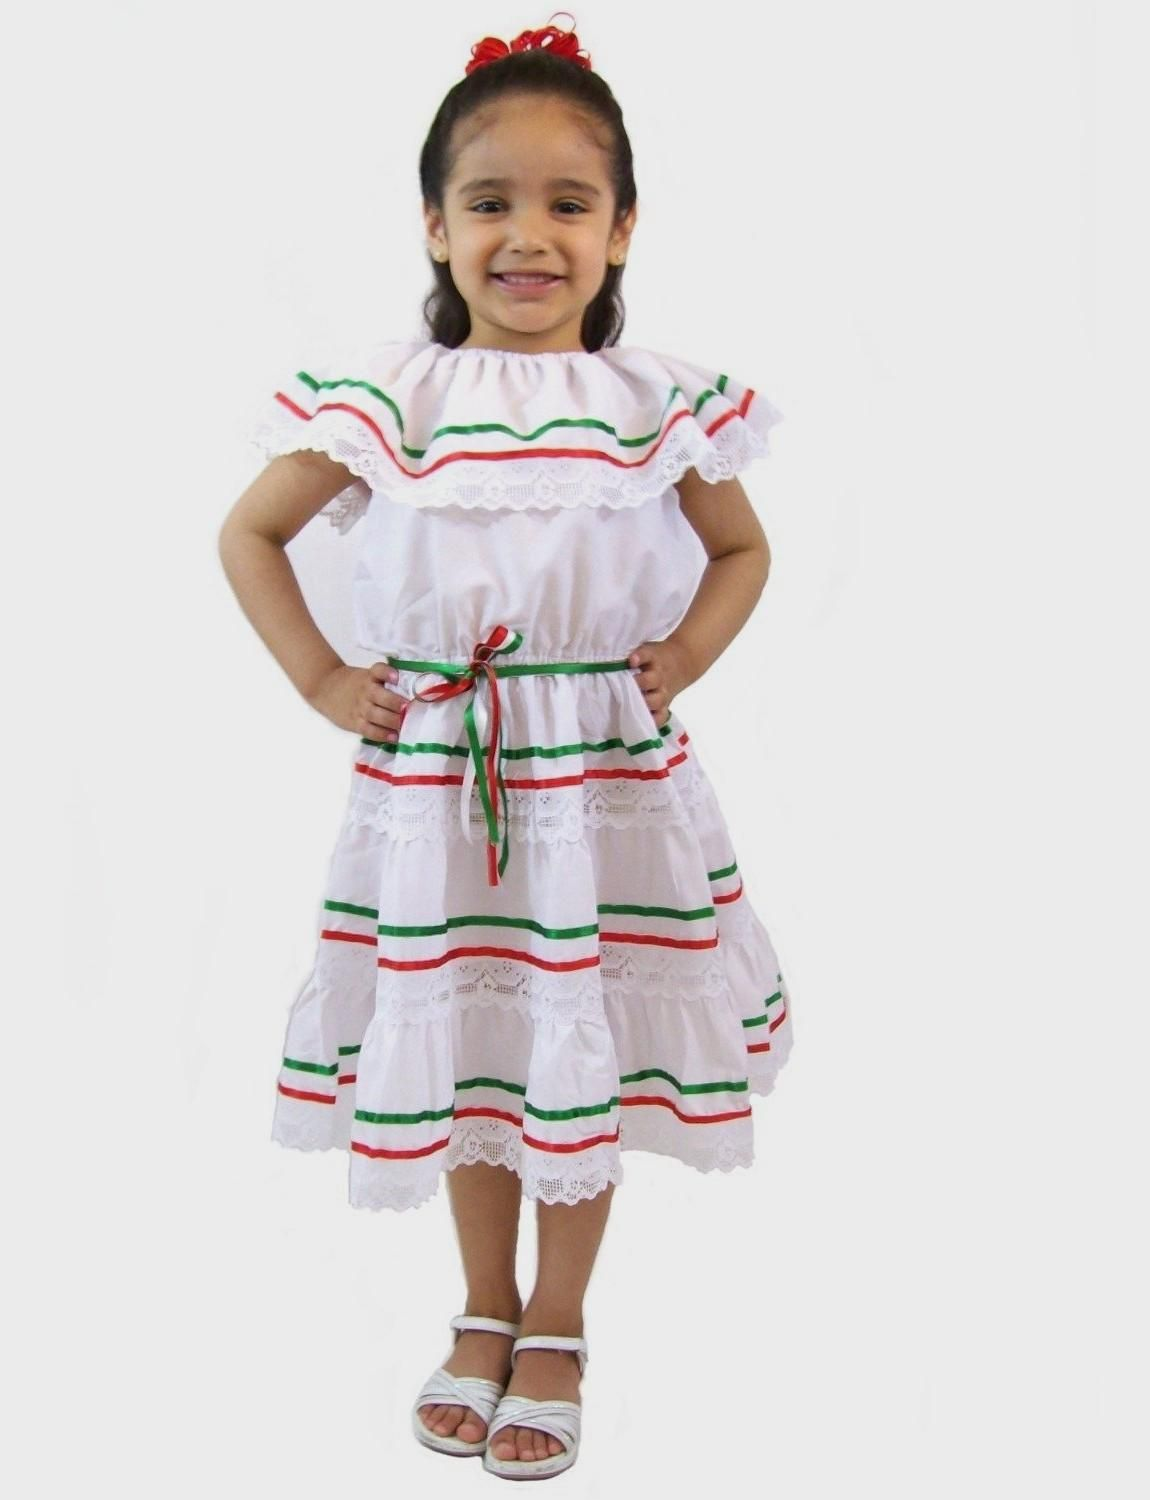 f66493a1b42 Amazon.com  Leos Mexican Imports Girls Mexican Dress 3 Ribbons ...